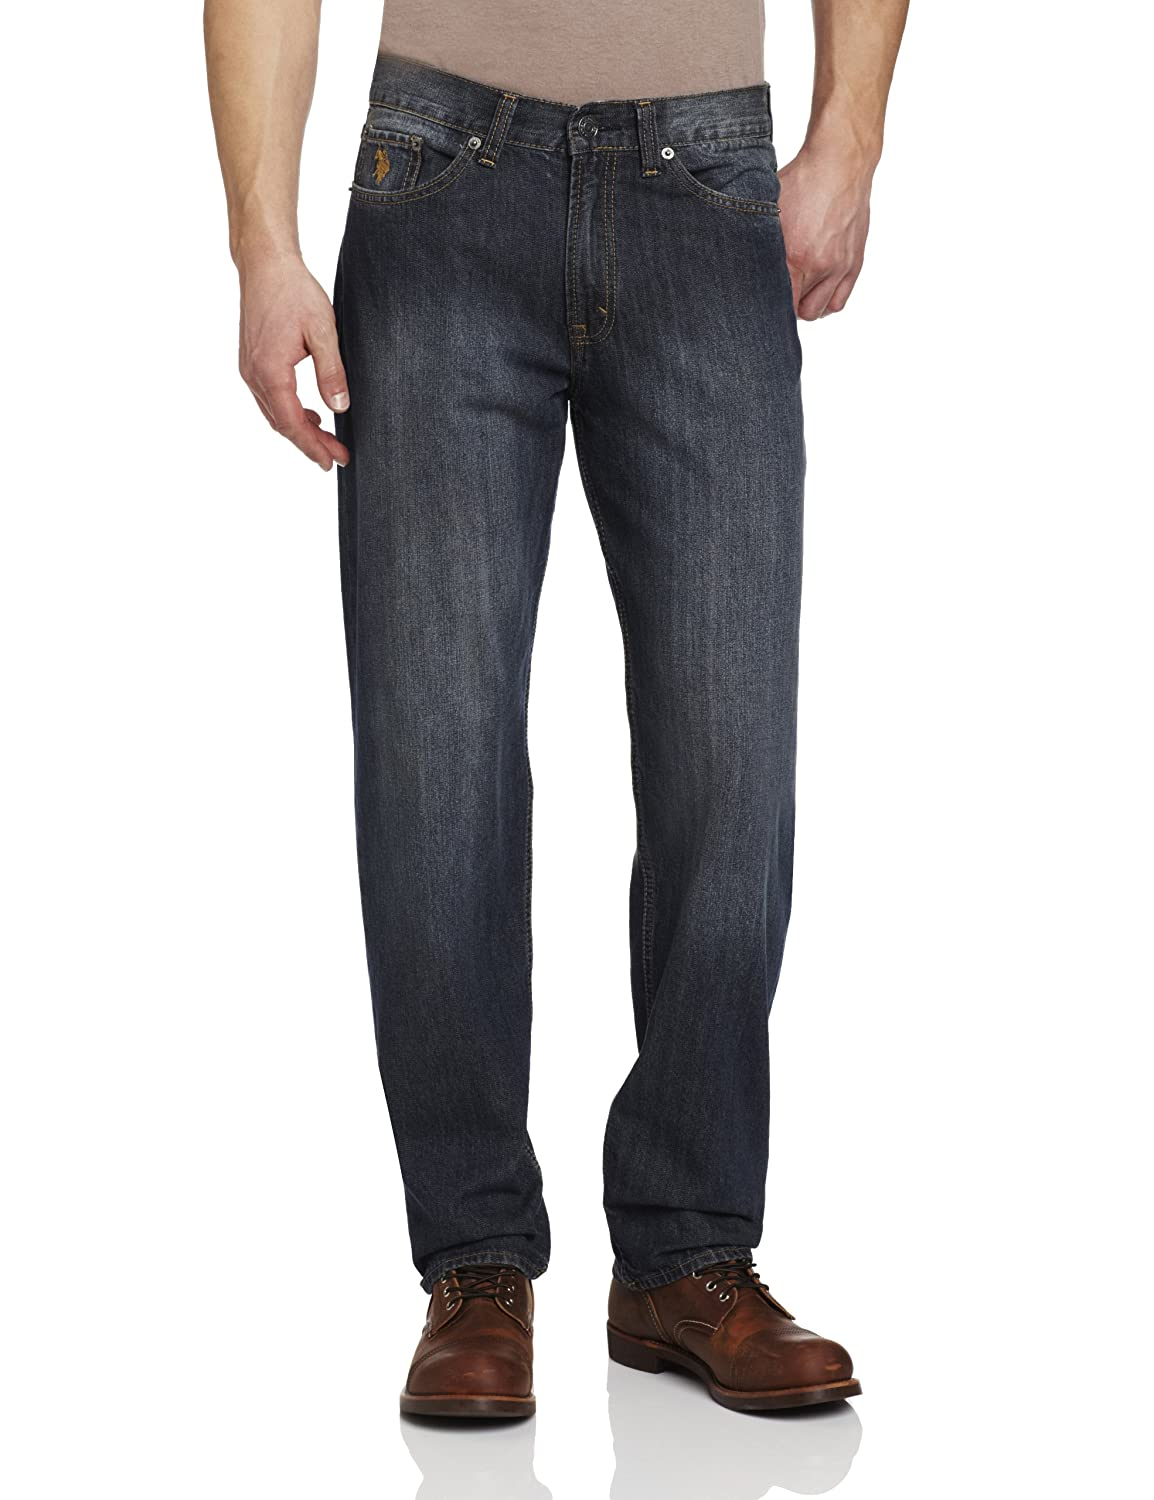 U.S. Polo Assn. Men's Relaxed Five-Pocket Jean at Amazon Men's Clothing  store: Jeans Us Polo Men